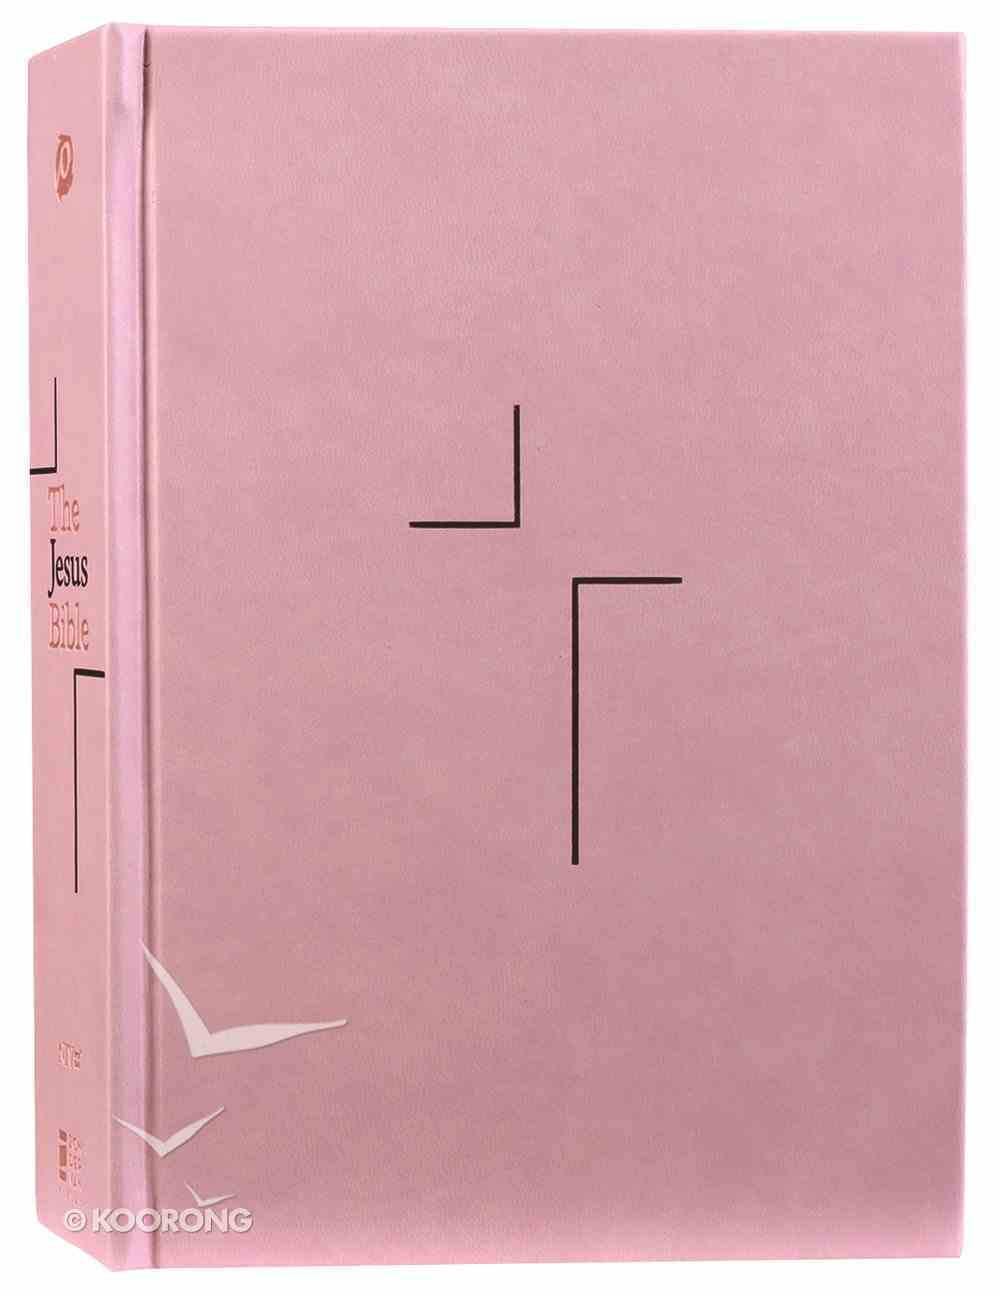 NIV the Jesus Bible Pink Comfort Print Edition (Black Letter Edition) Fabric Over Hardback